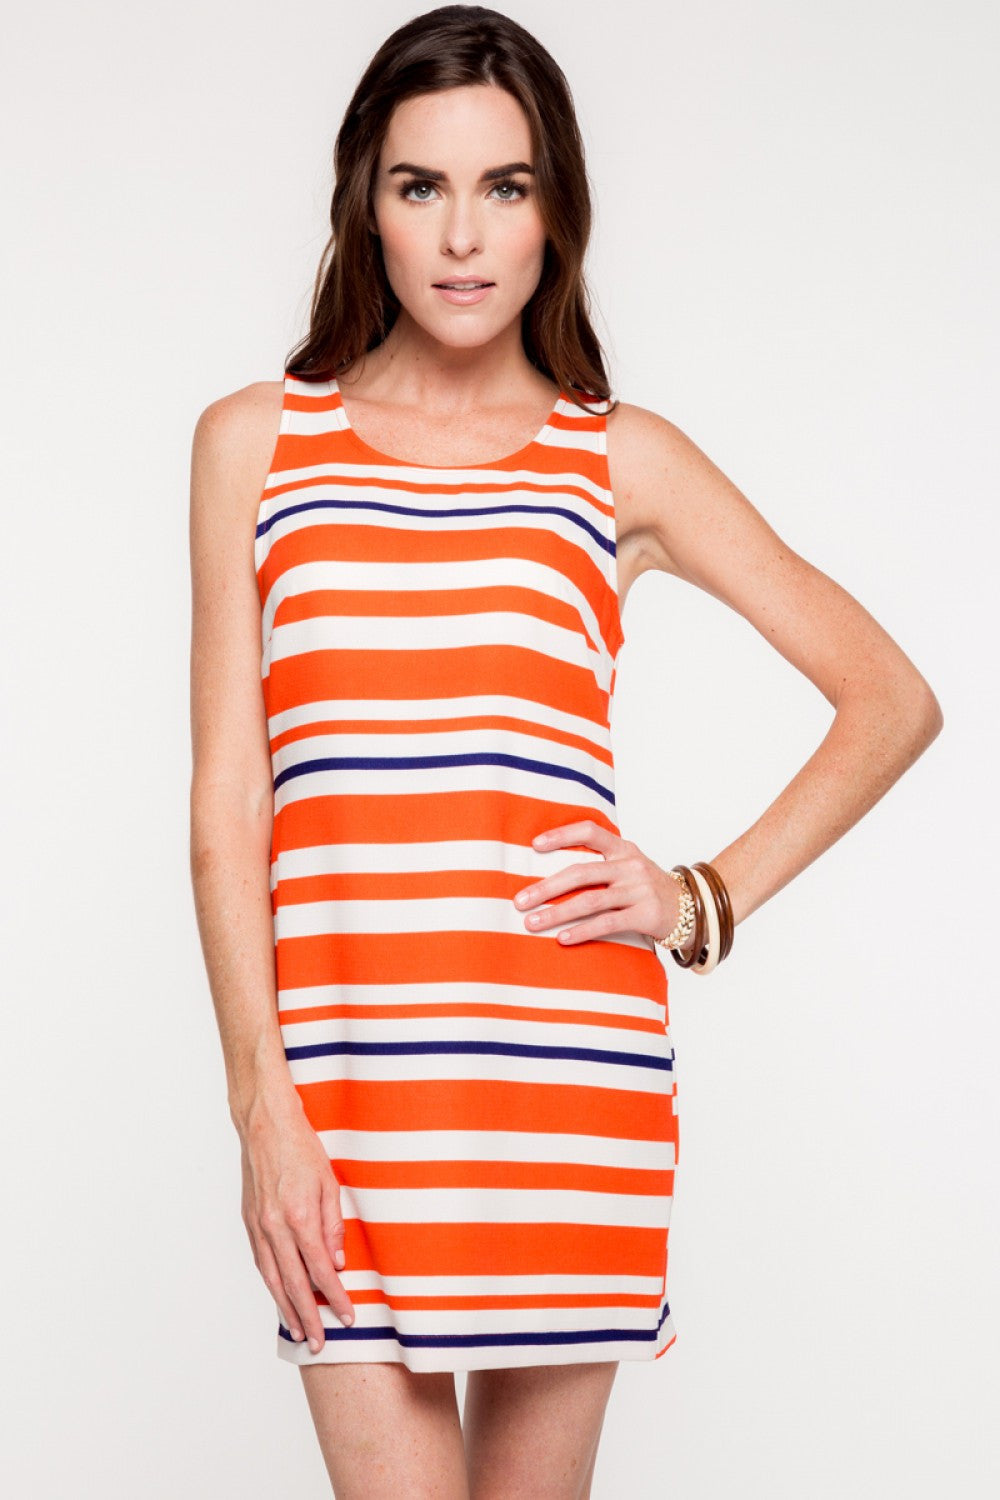 Everly: Aubie Dress, Orange/Navy